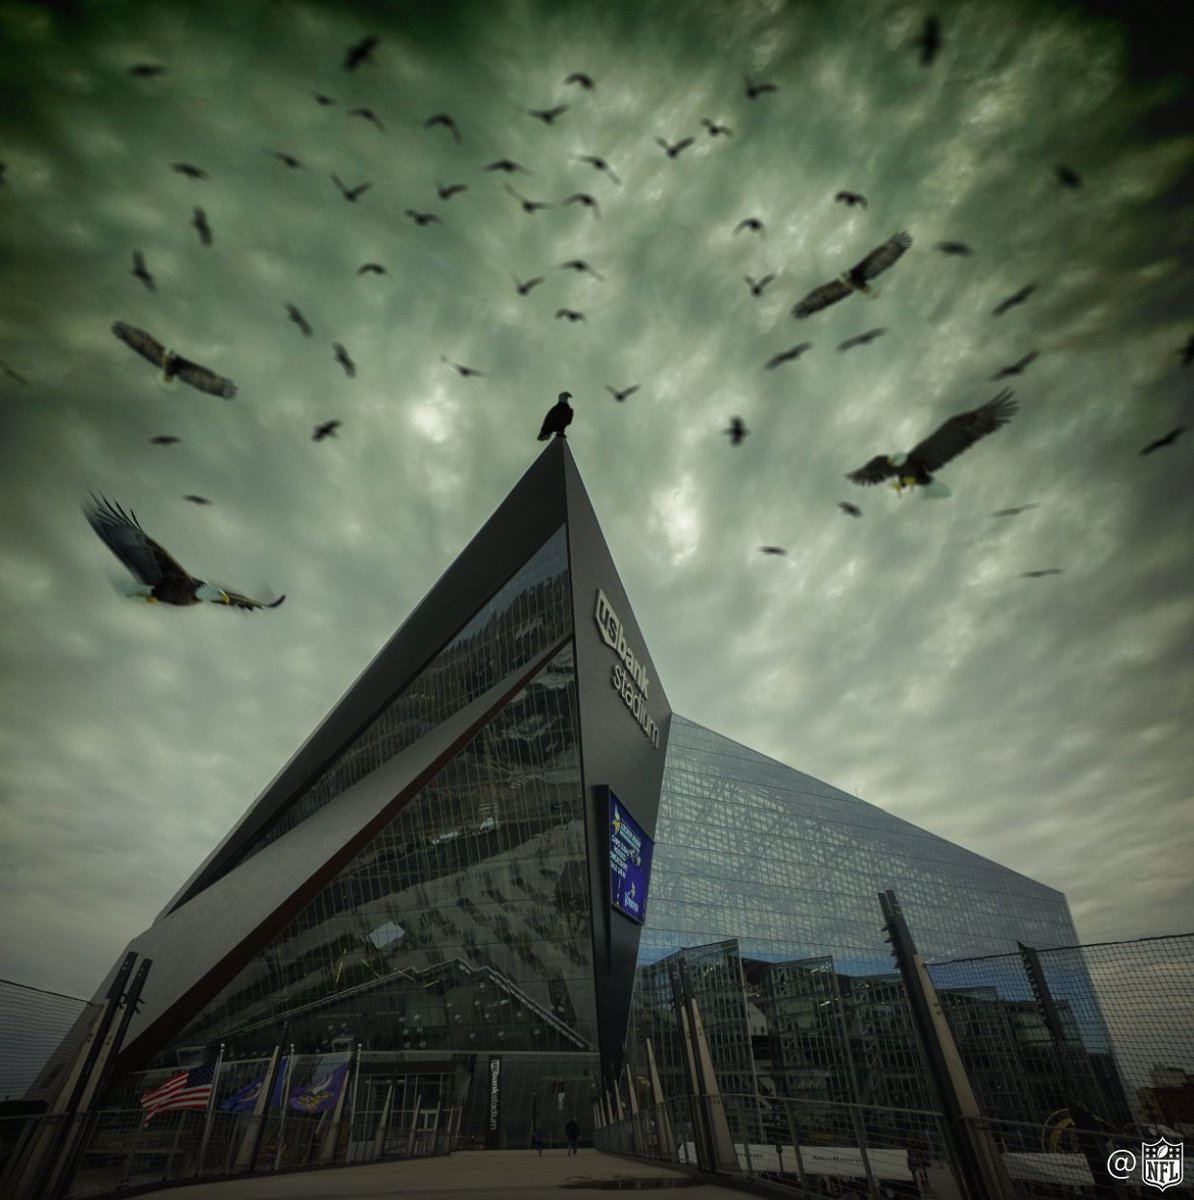 The @Eagles are coming... #FlyEaglesFly #SBLII https://t.co/sO7AUUsaV7